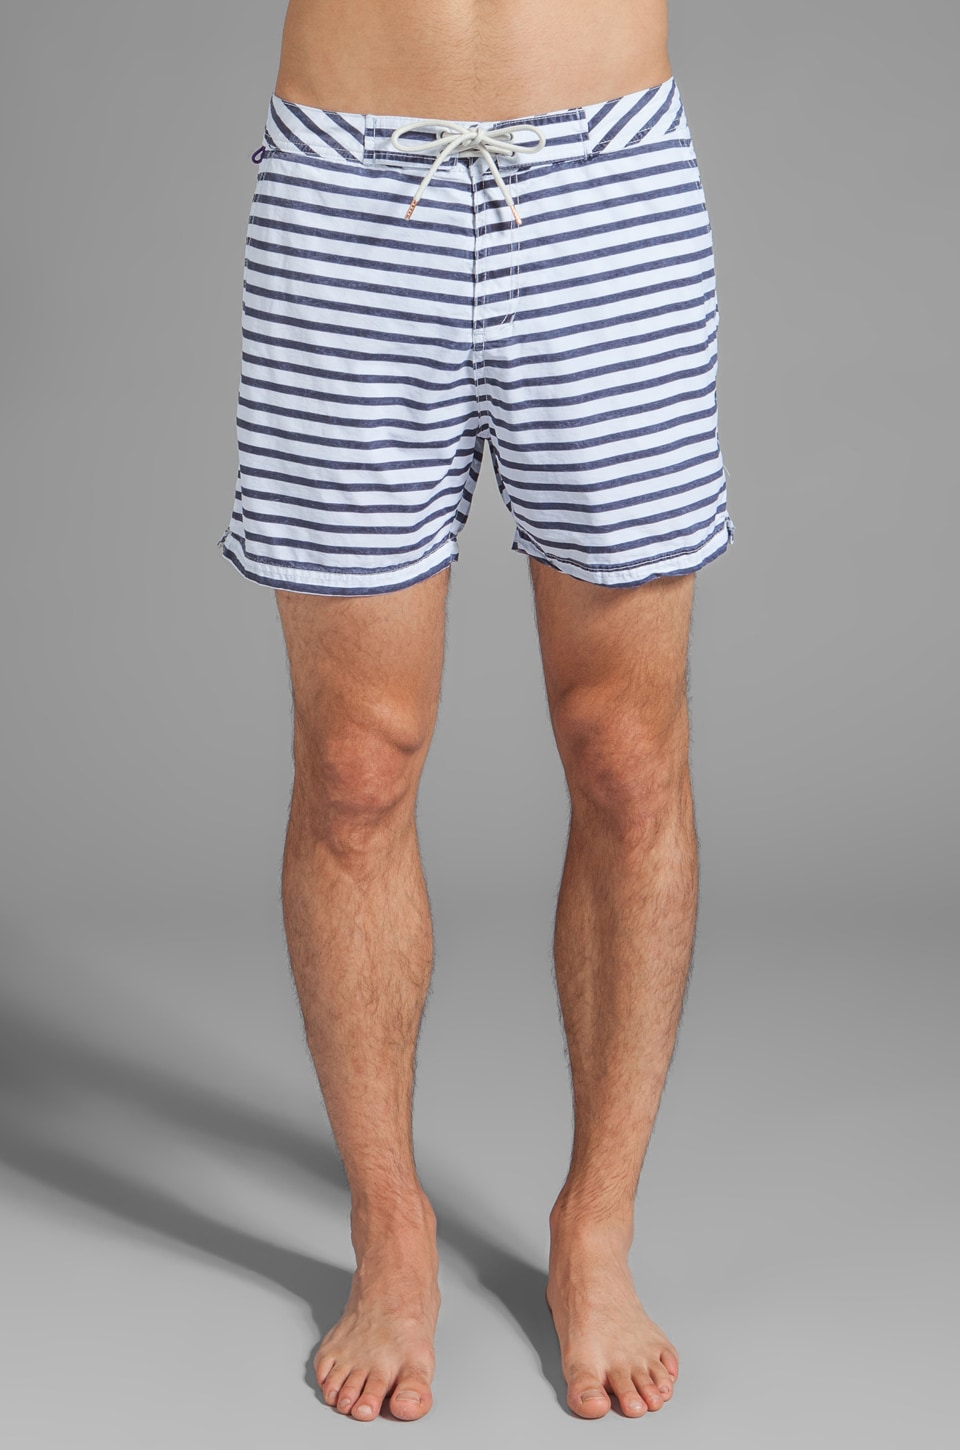 Scotch & Soda Stripe Swim Short in Navy/White